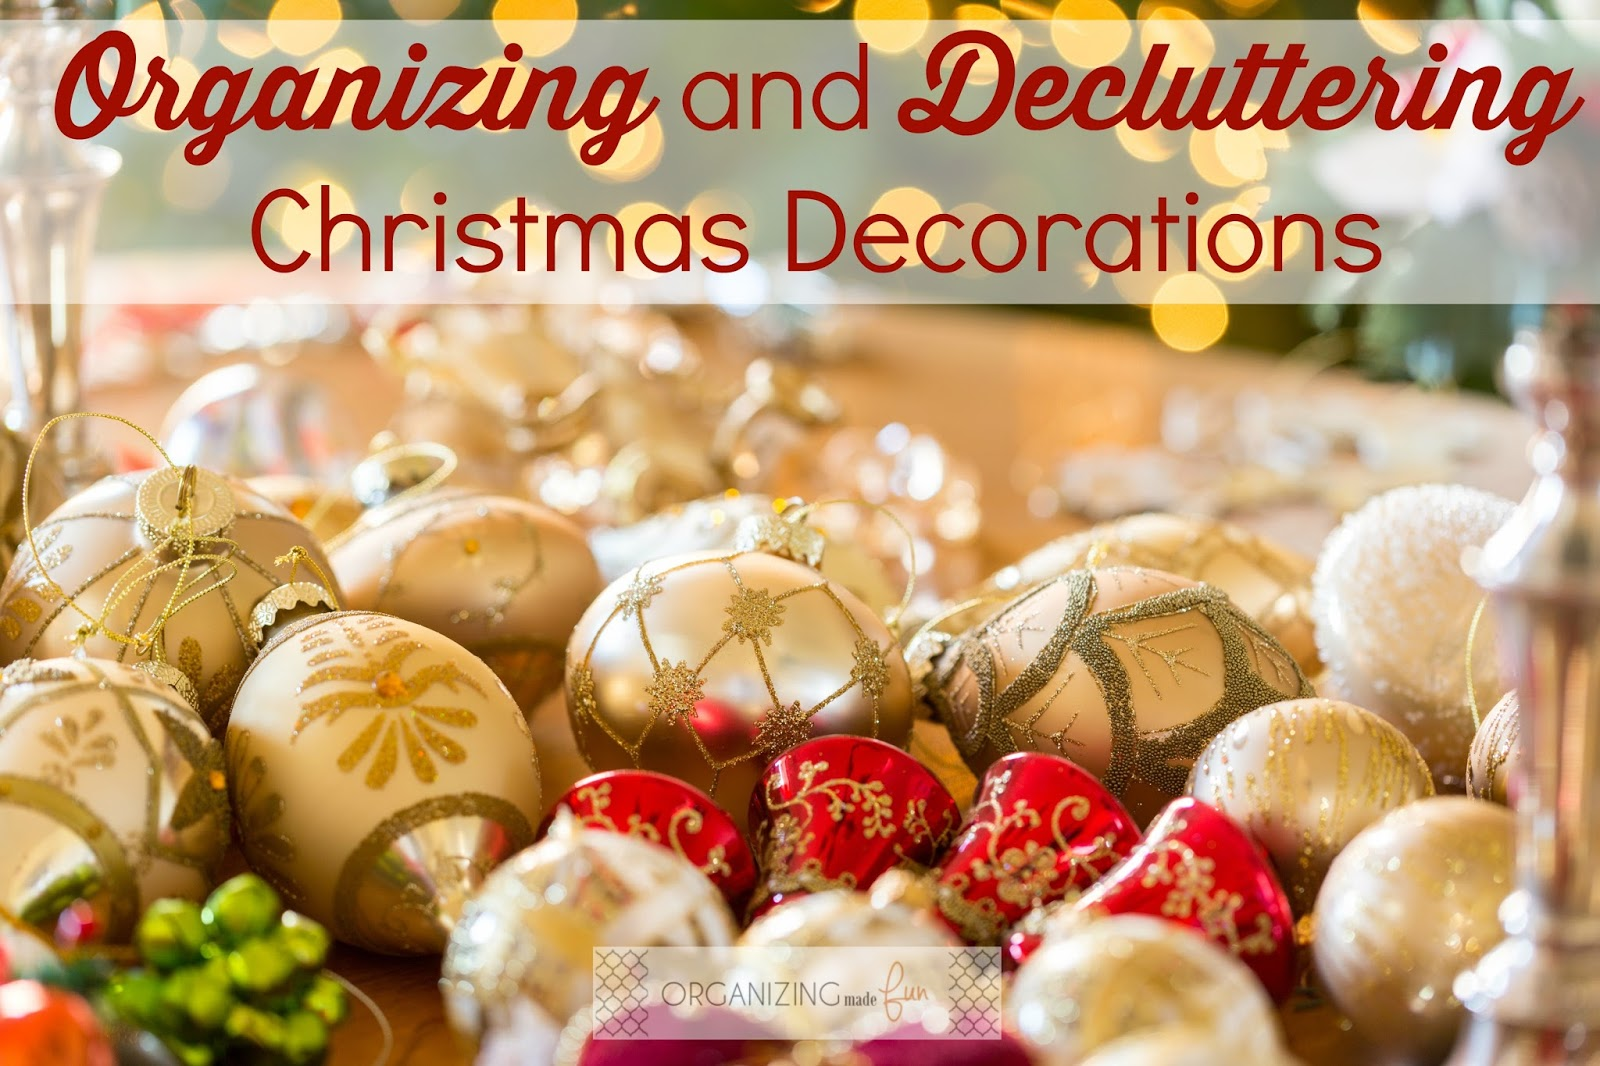 organizing and decluttering christmas decorations organizingmadefuncom - Organizing Christmas Decorations